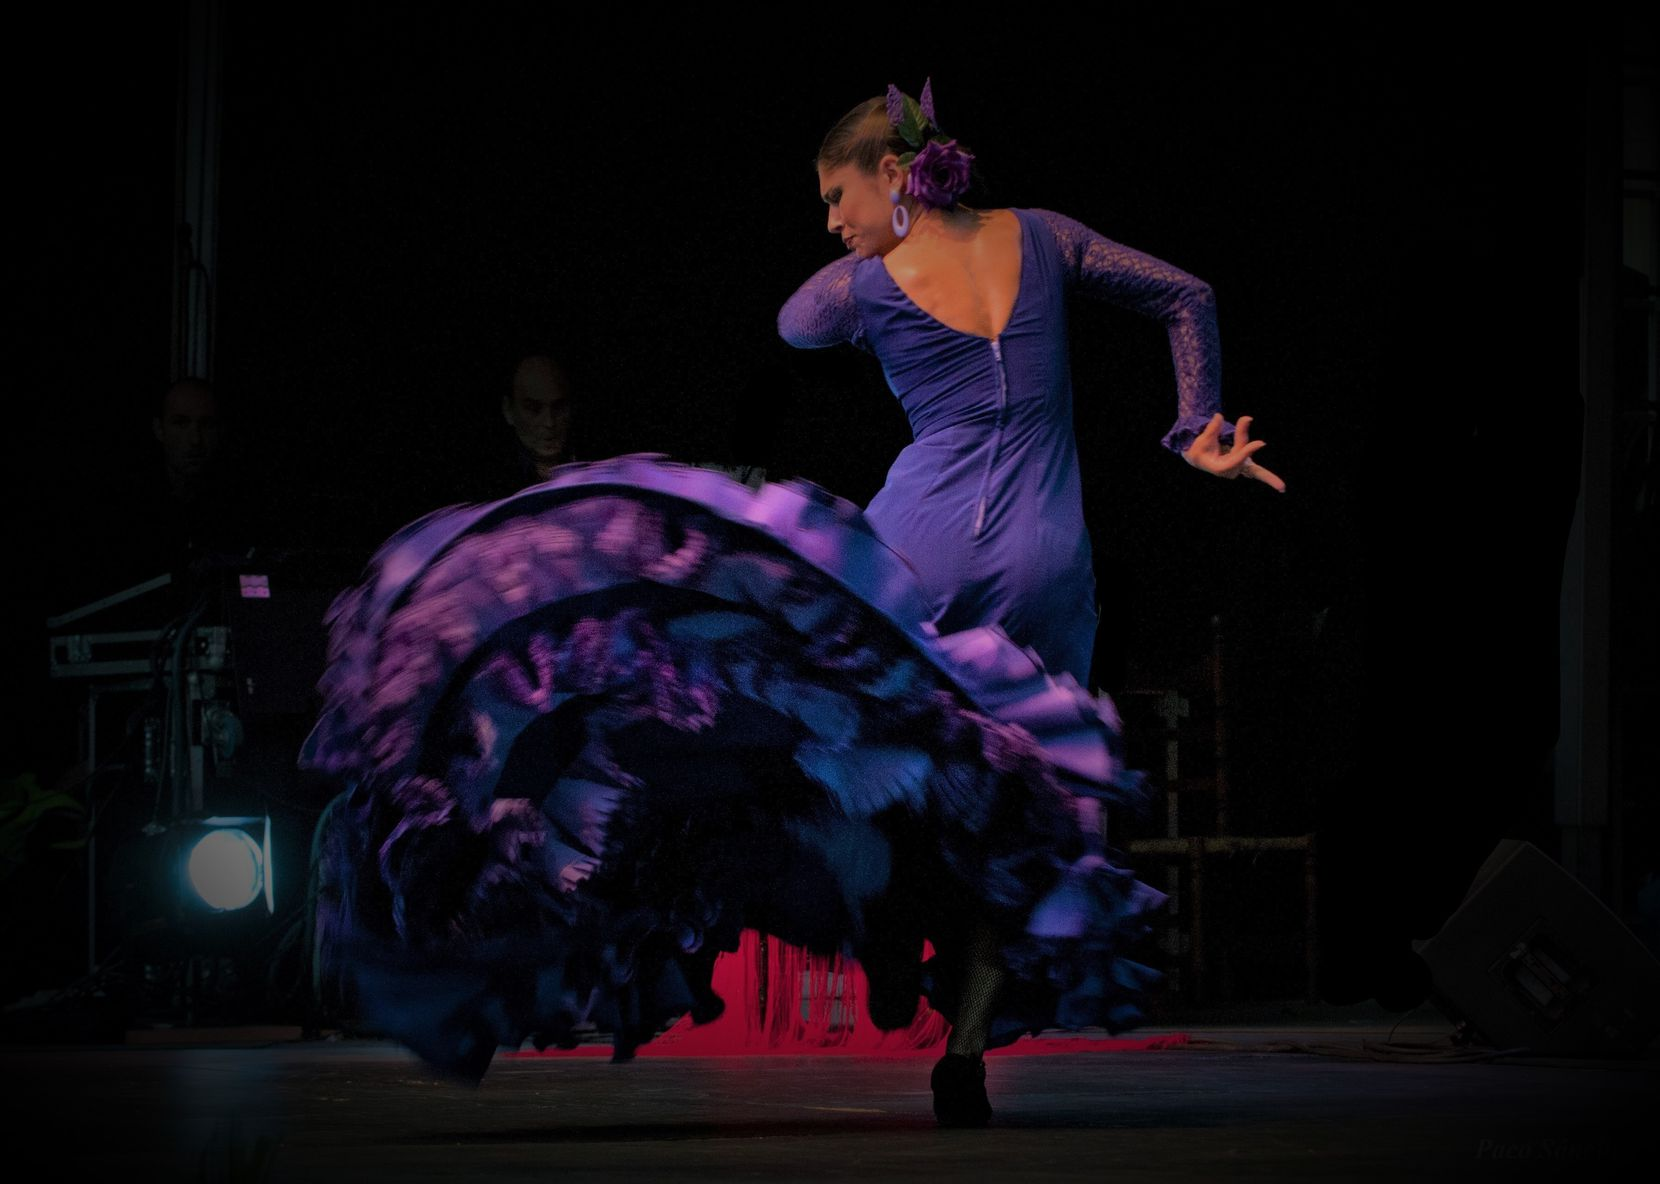 Flamenco dancer Lakshmi Basile performs at the Oak Cliff Flamenco Festival. The 2021 event will be held Sept. 6-11 at various locations in and around downtown Dallas.